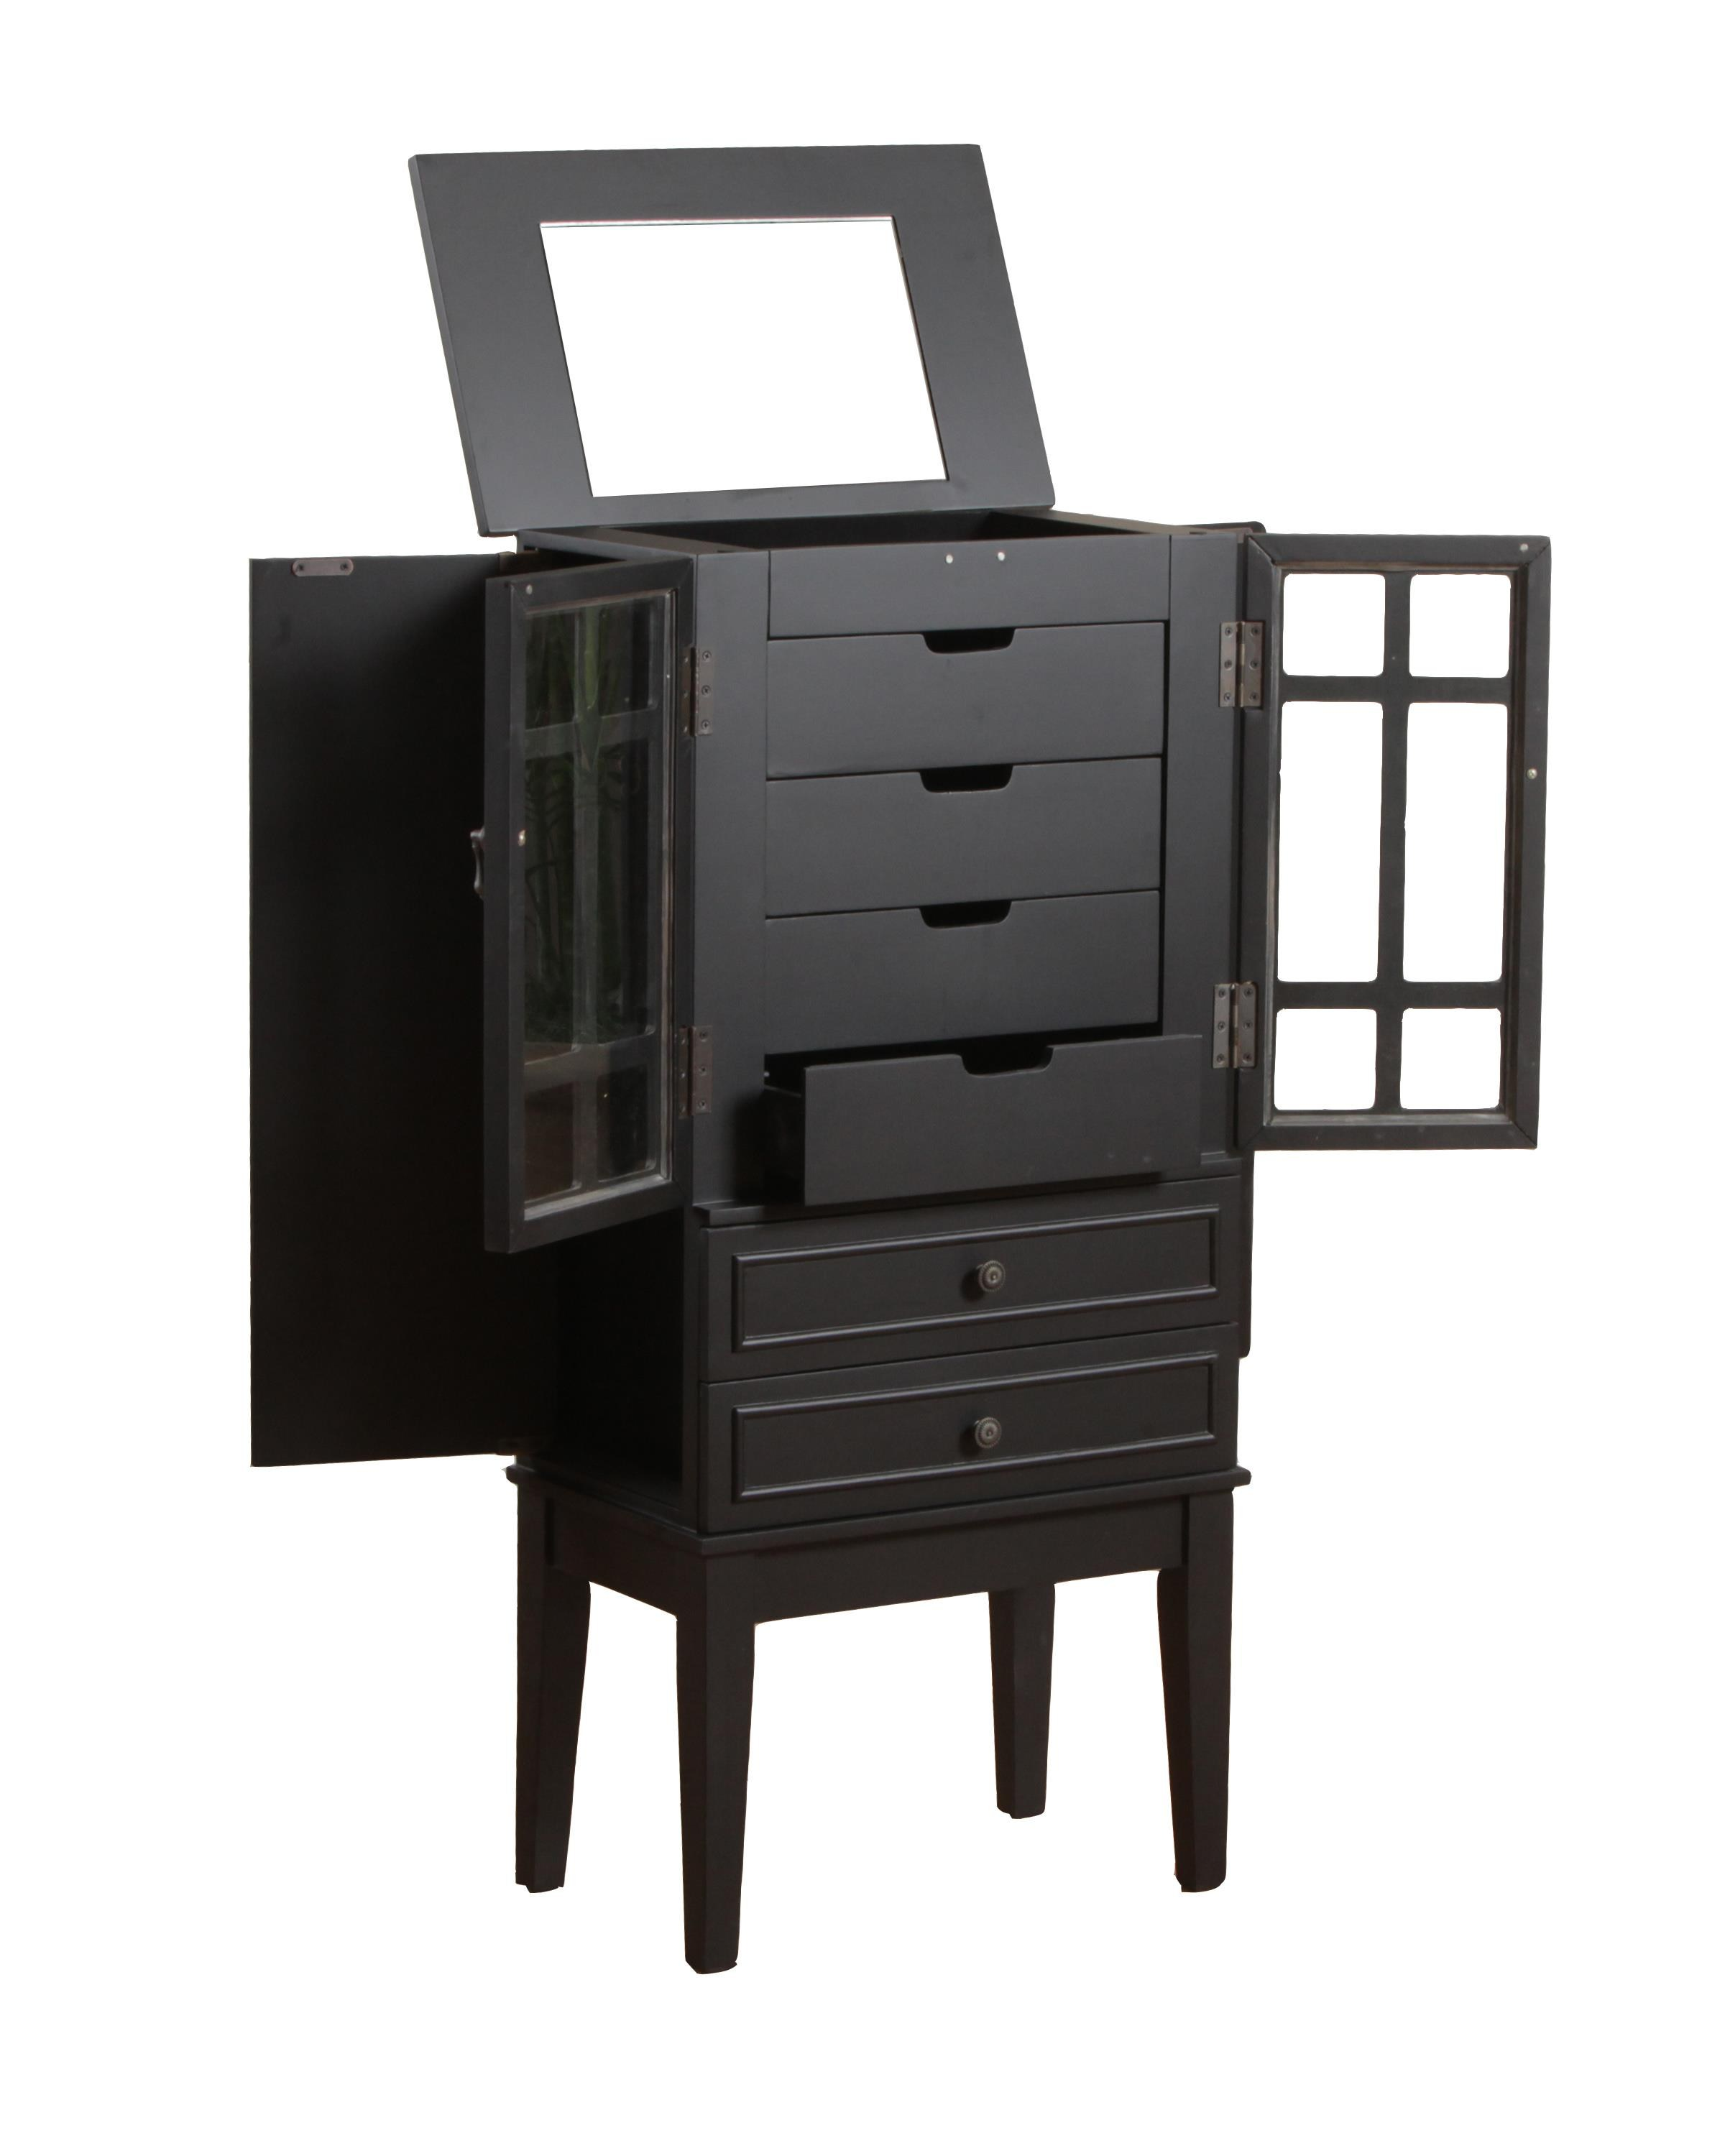 Armoire Furniture | Hooker Furniture Armoire | Armoire Closet Furniture